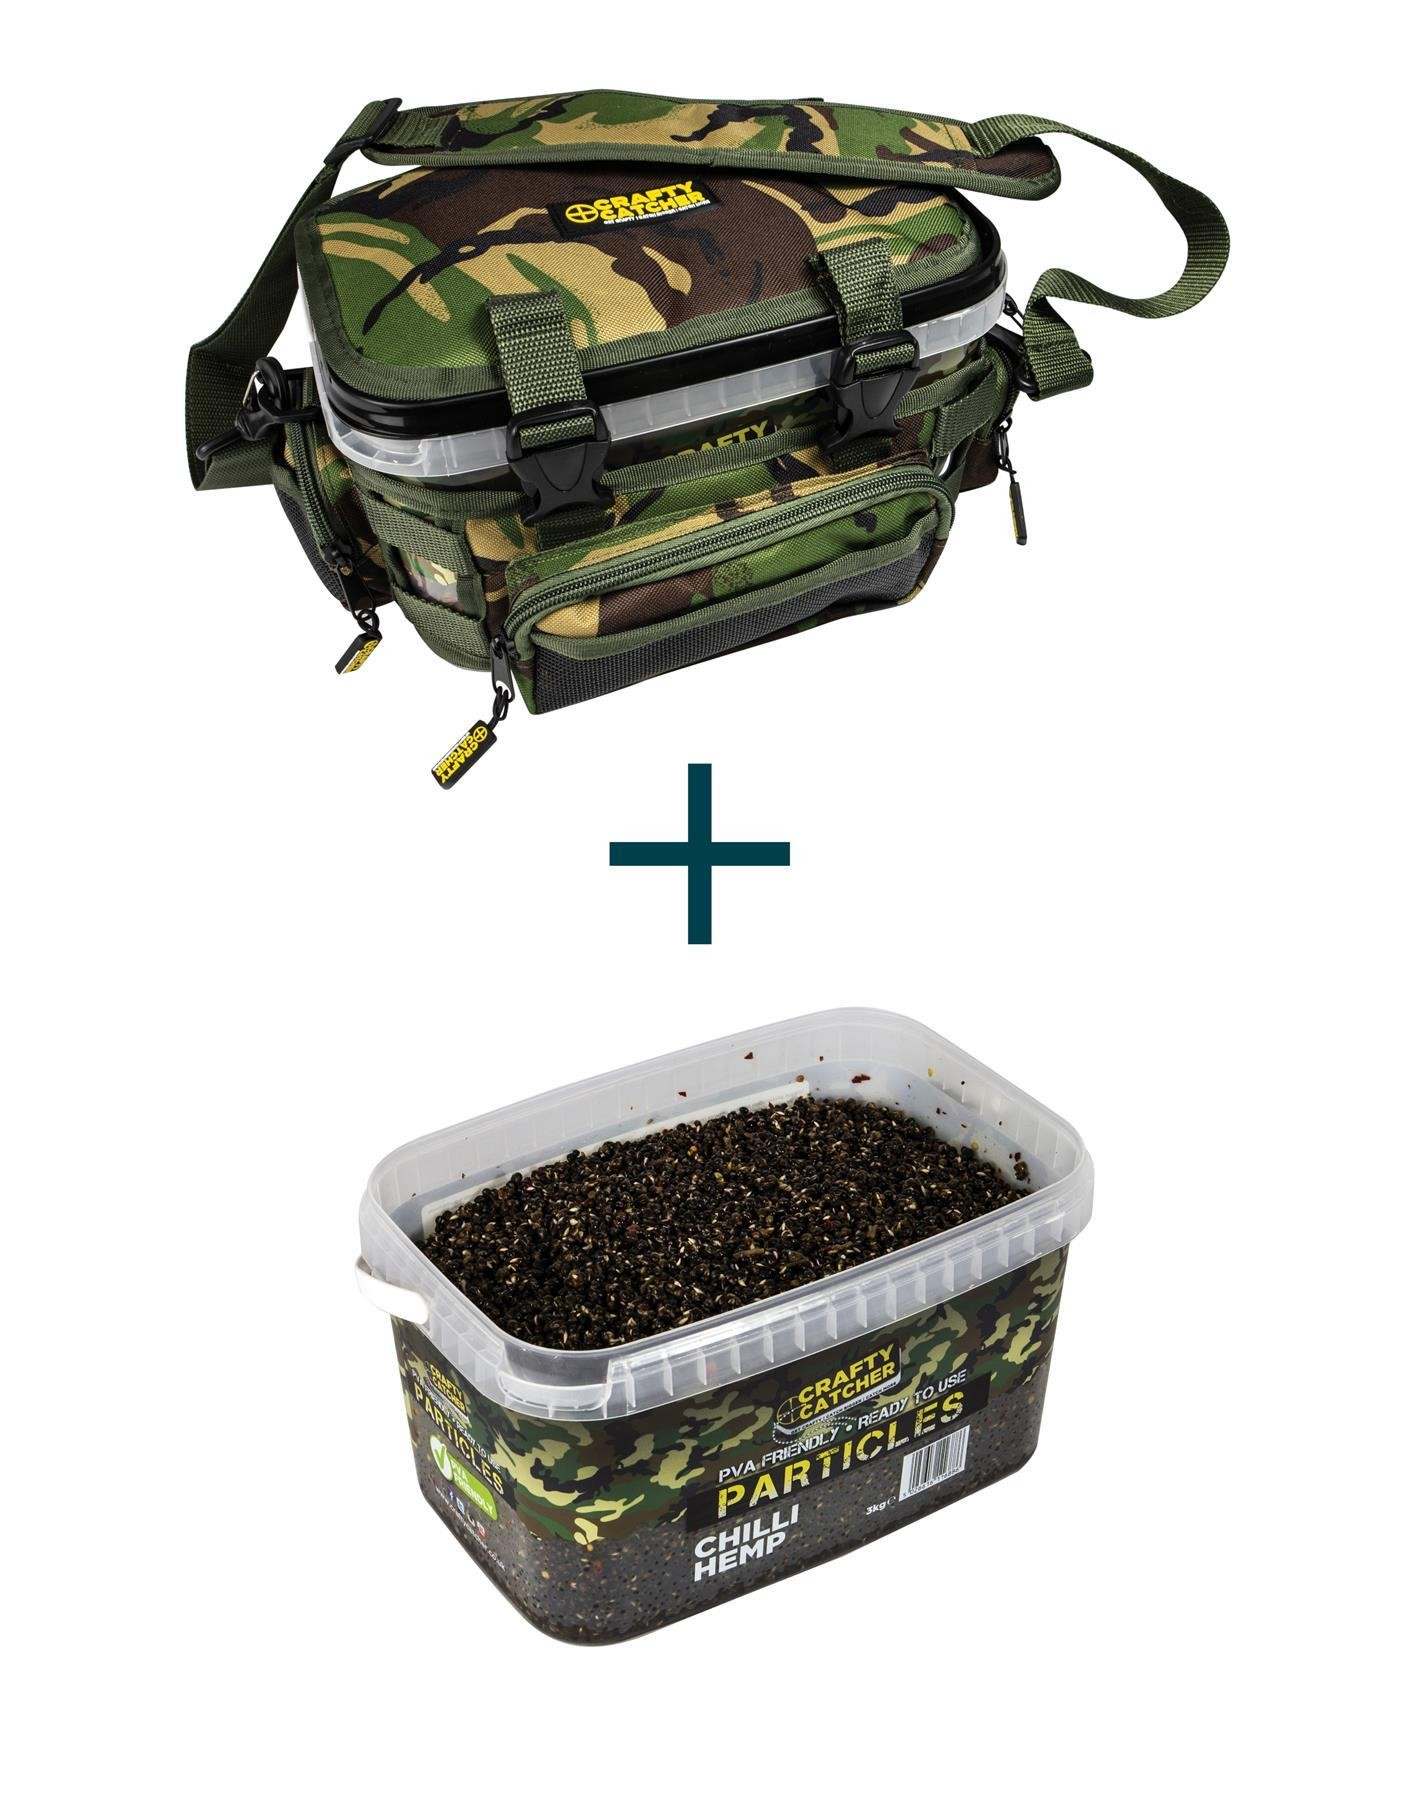 Crafty Catcher DPM Bucket Bag + Chilli Hemp Particle Bucket 3kg